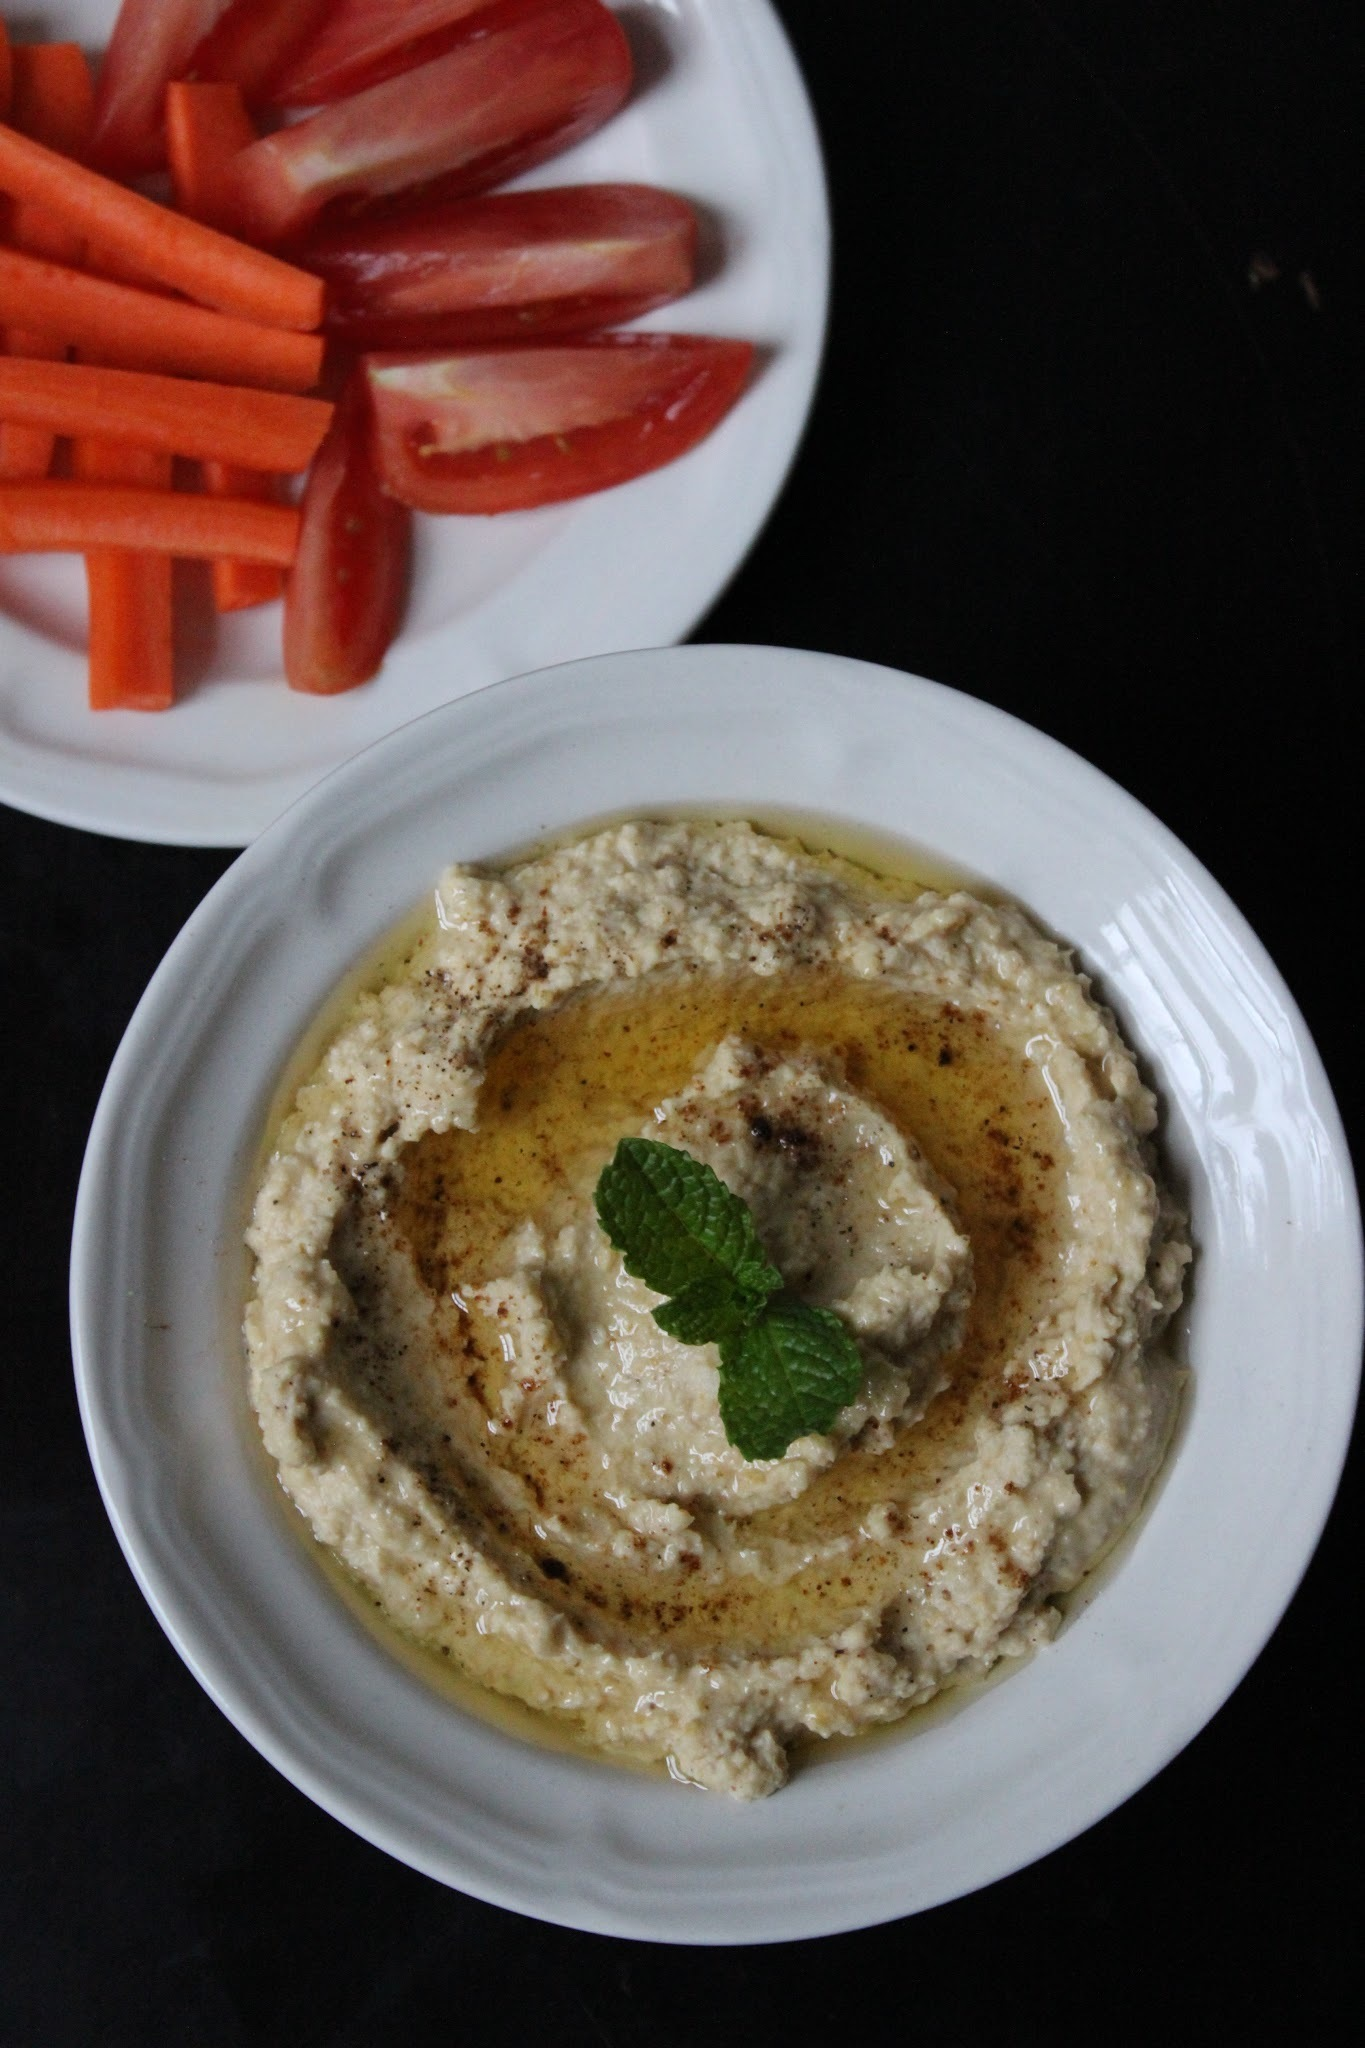 Creamy Hummus with Home Made Tahini Sauce